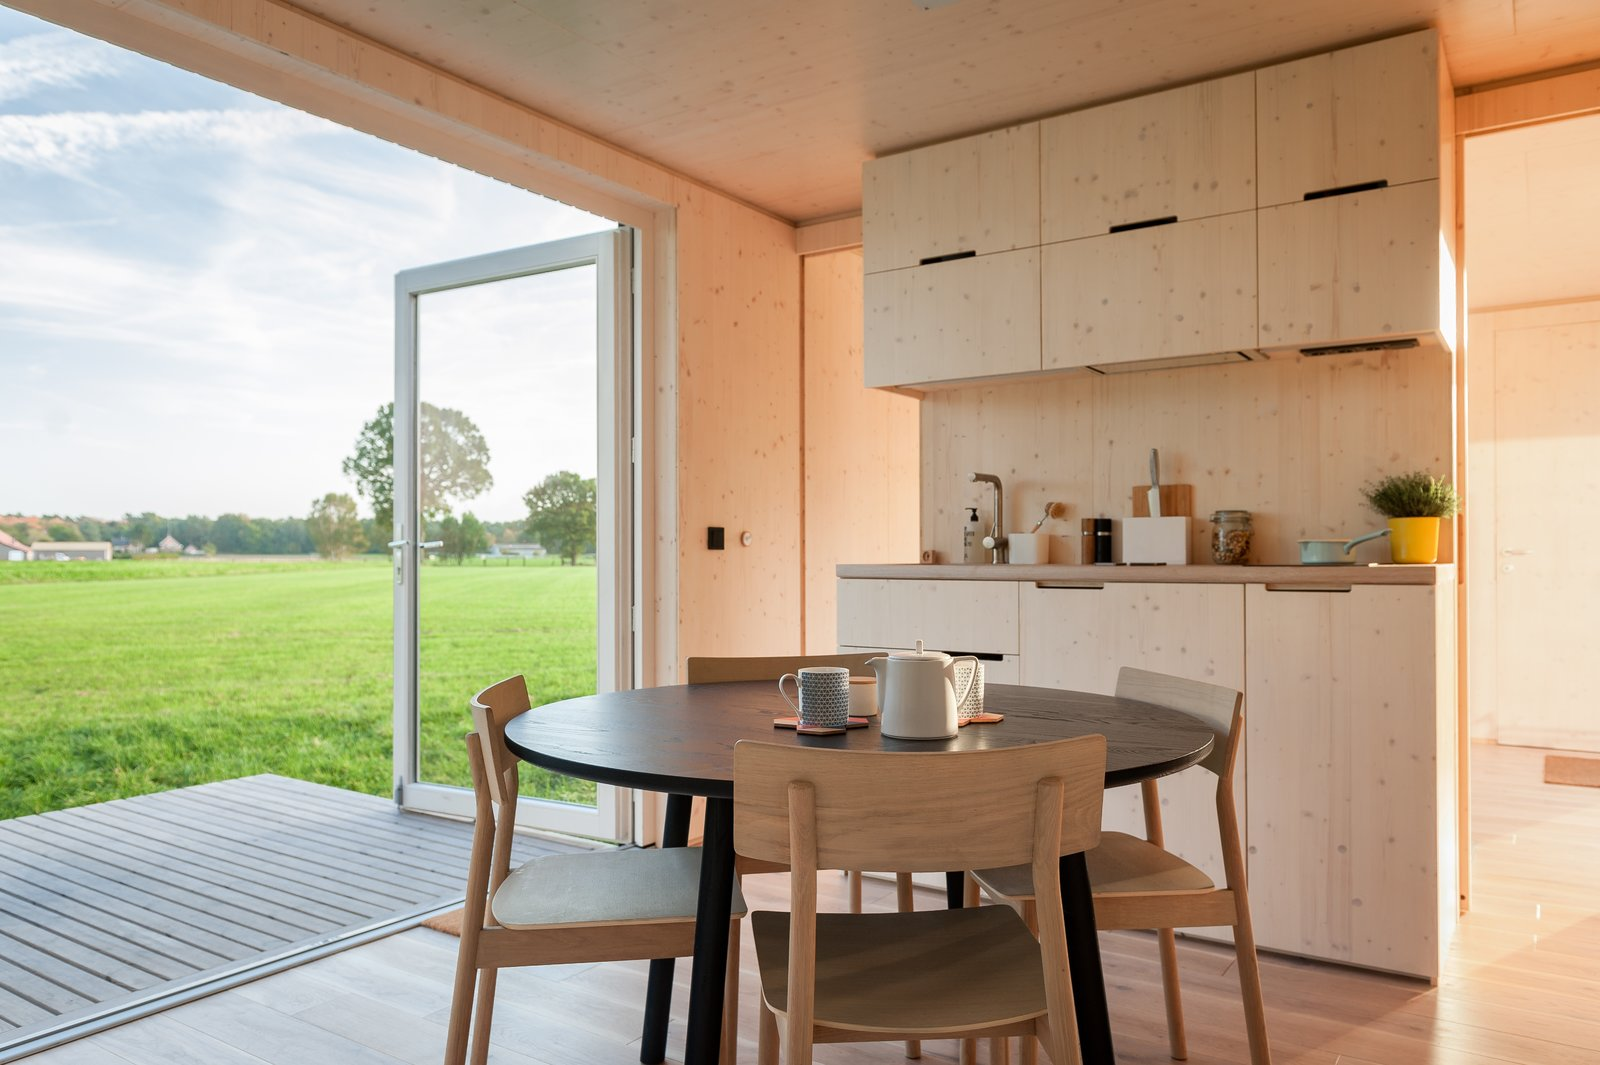 Dining Room, Light Hardwood Floor, Chair, Table, and Storage  Photo 7 of 12 in These Off-the-Grid Cabins in Belgium Keep Their Locations Secret Until You Book